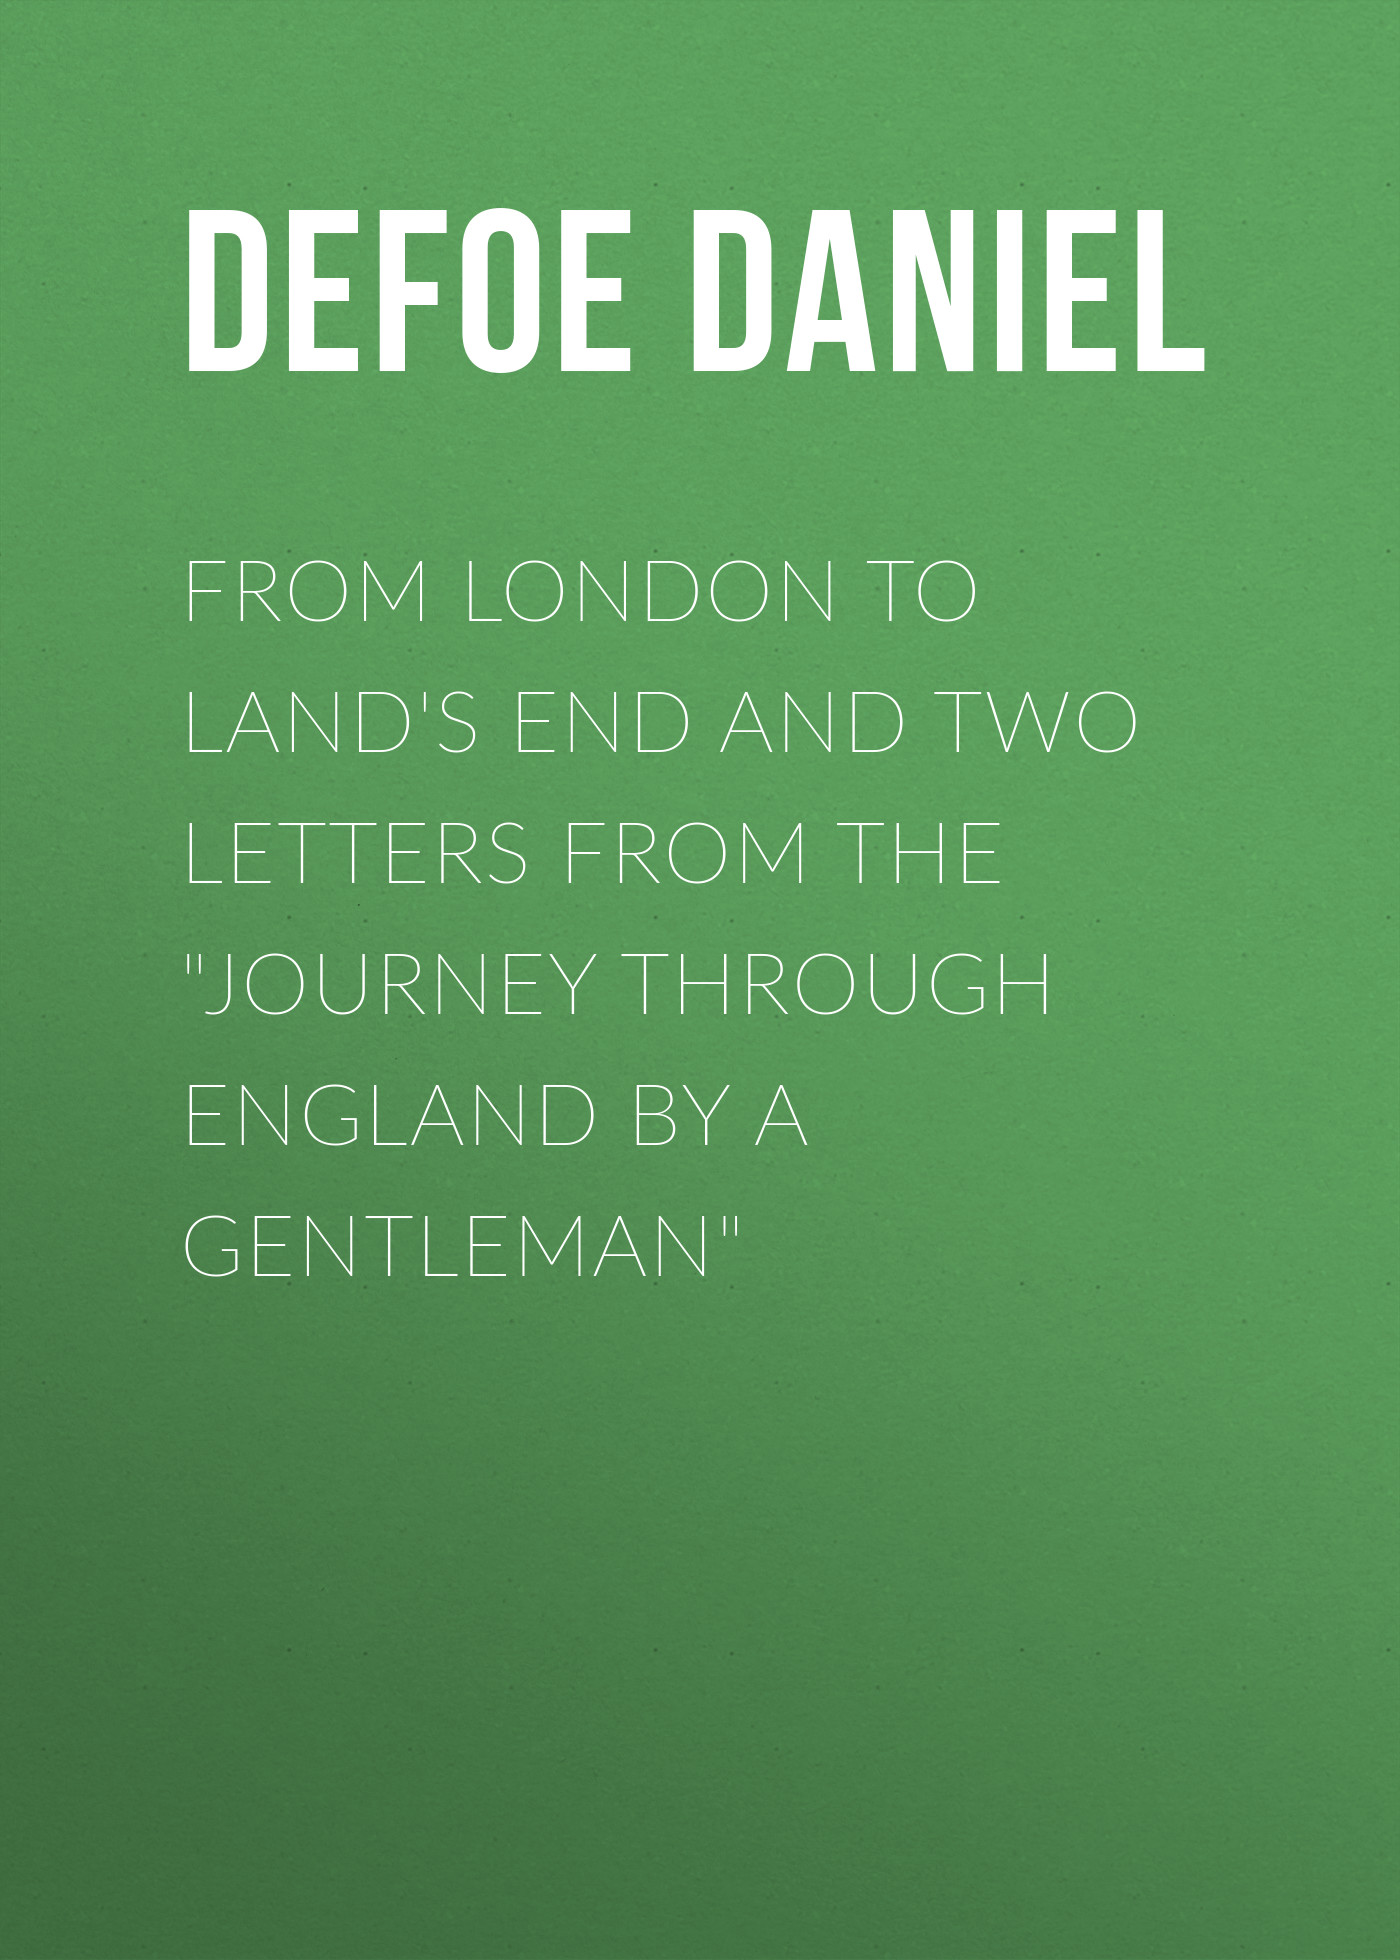 Даниэль Дефо From London to Land's End and Two Letters from the Journey through England by a Gentleman from london leipzig